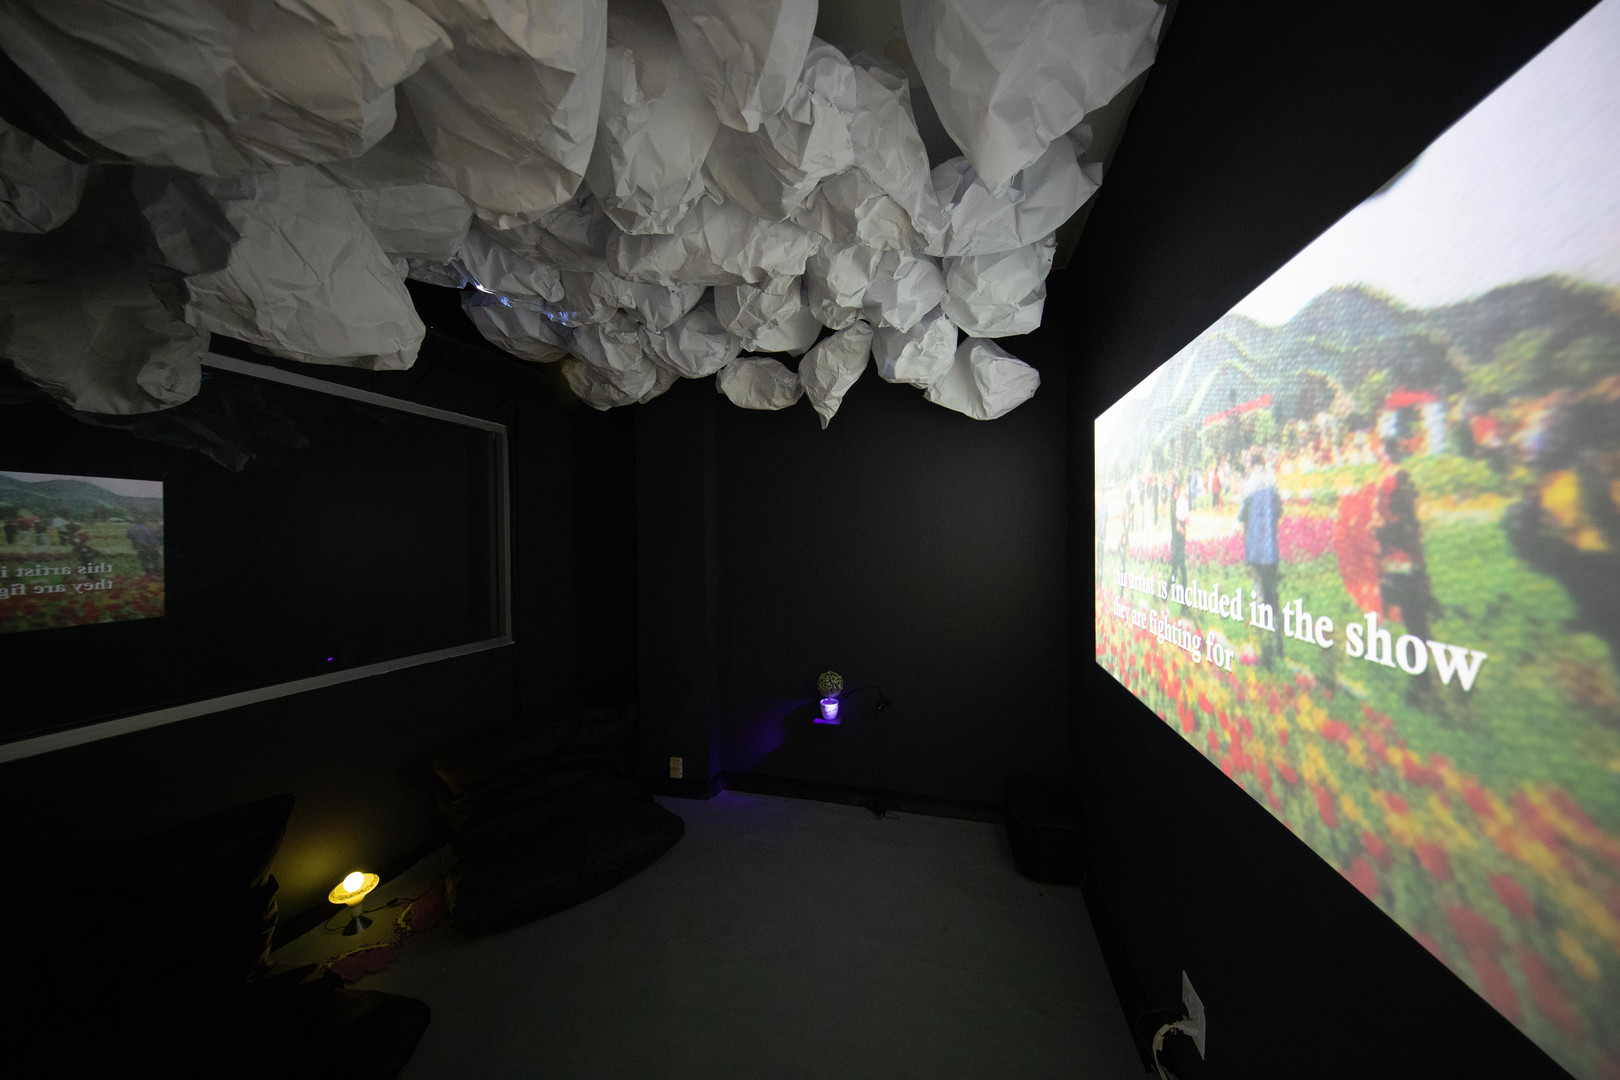 How to Boil Time installation view, 2019